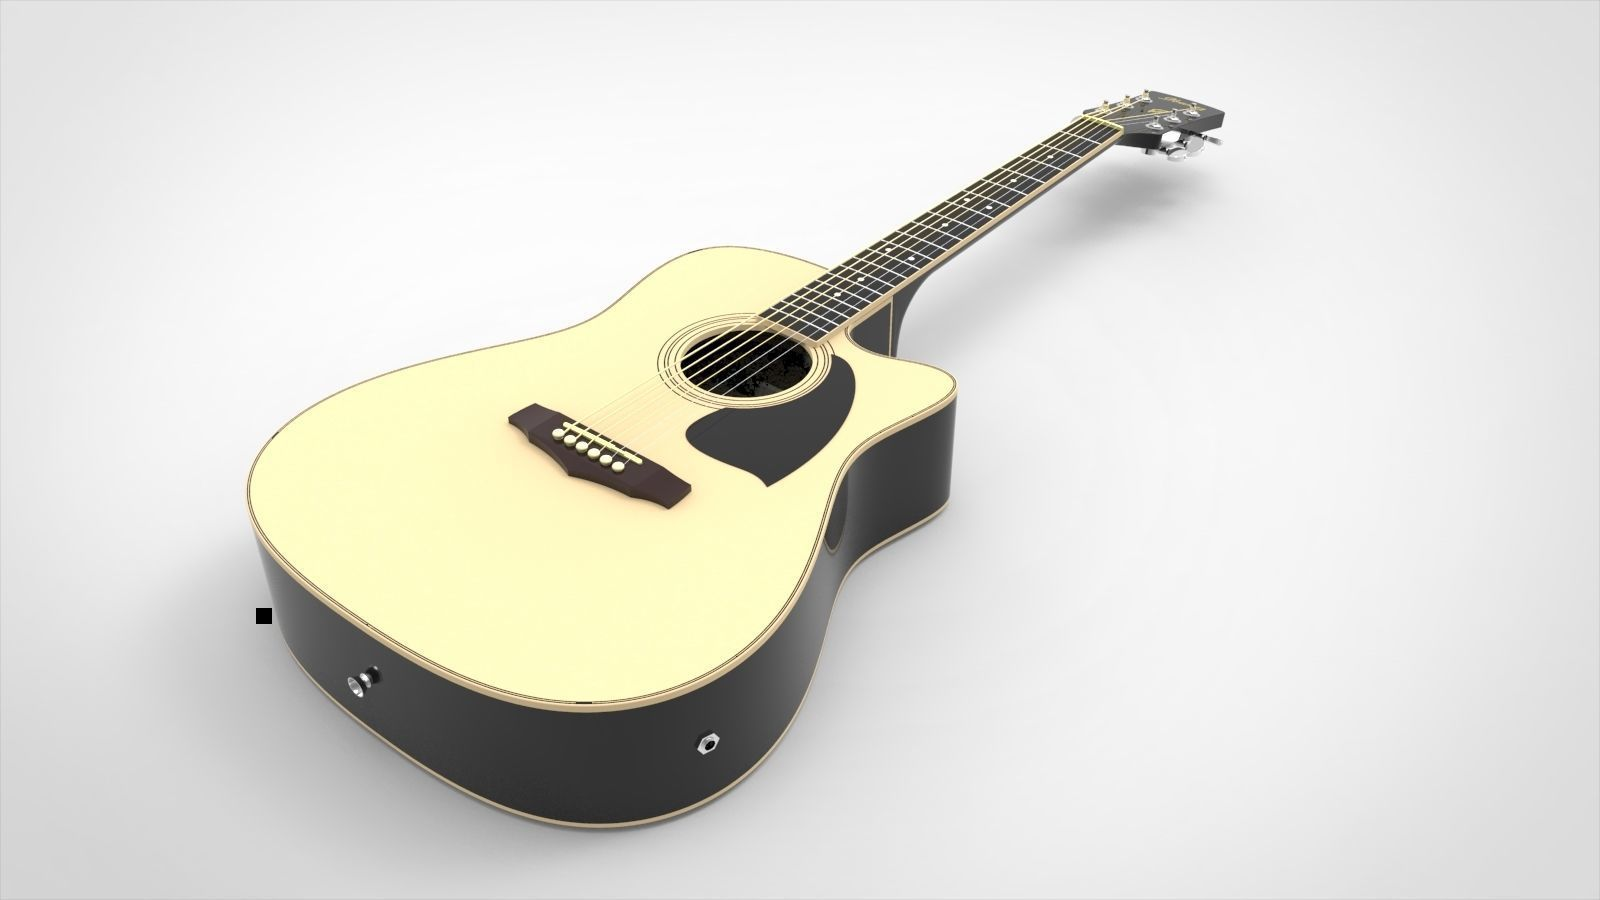 Ibanez Electroacoustic Guitar with Materials